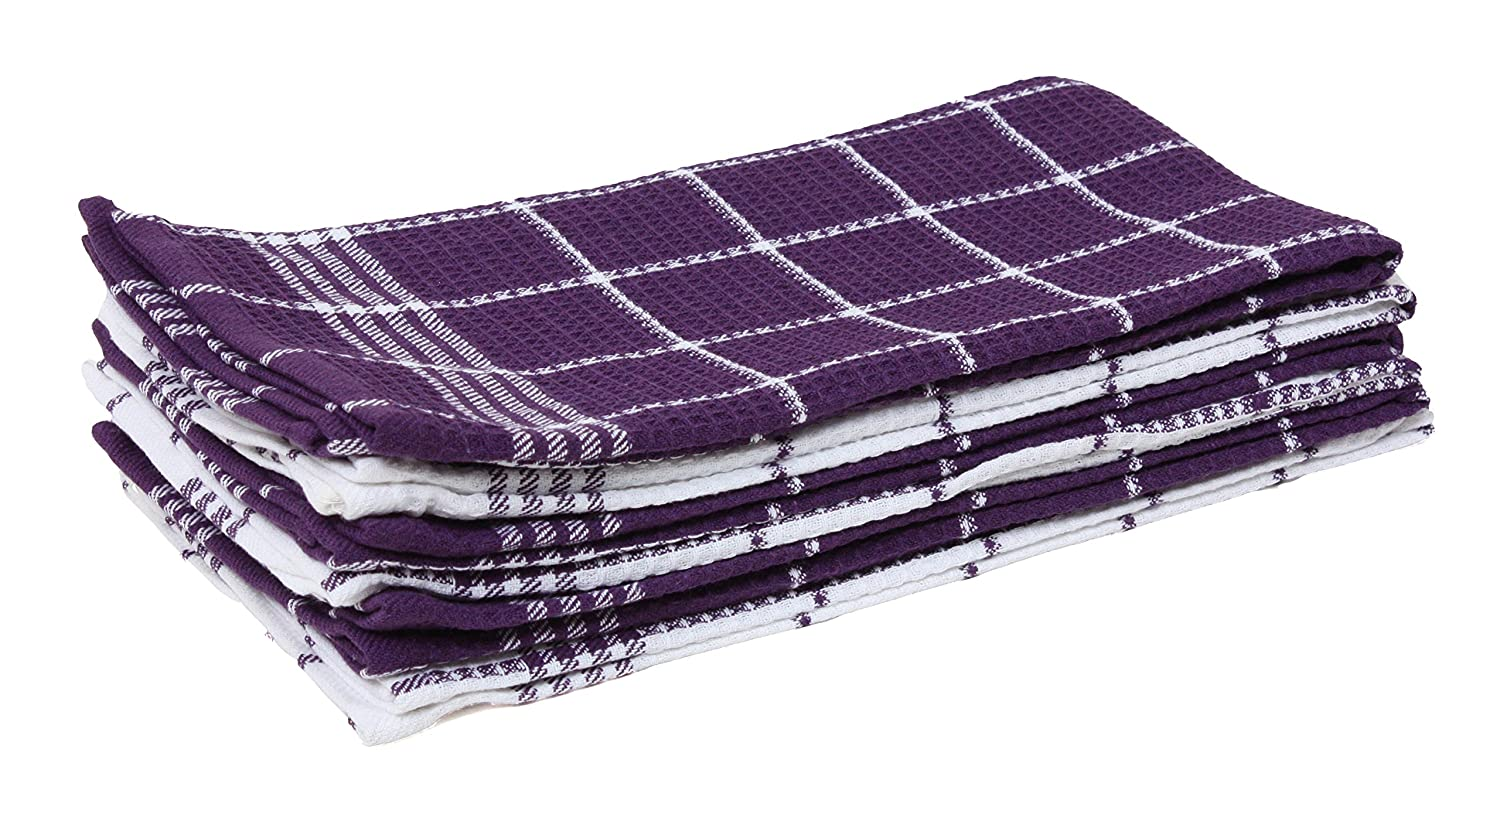 "Cotton Waffle Checkered Terry Dish Towels, 18x25"" Set of 6, Absorbent Durable Drying Cleaning Kitchen Towels-Eggplant Purple/White"